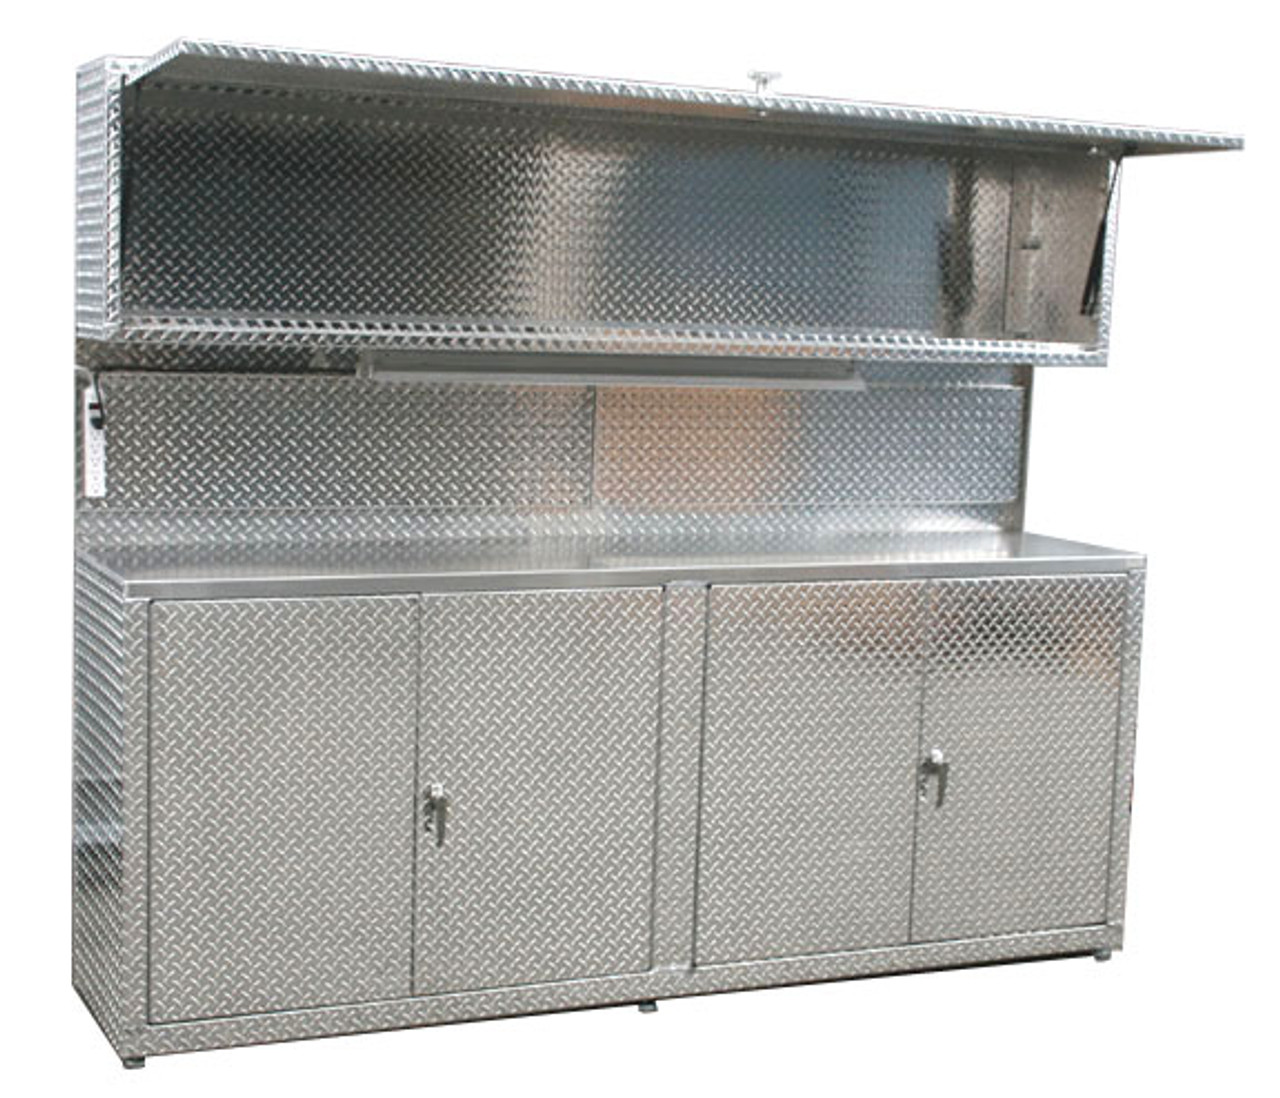 8u0027 Cabinet With Upper Cabinet